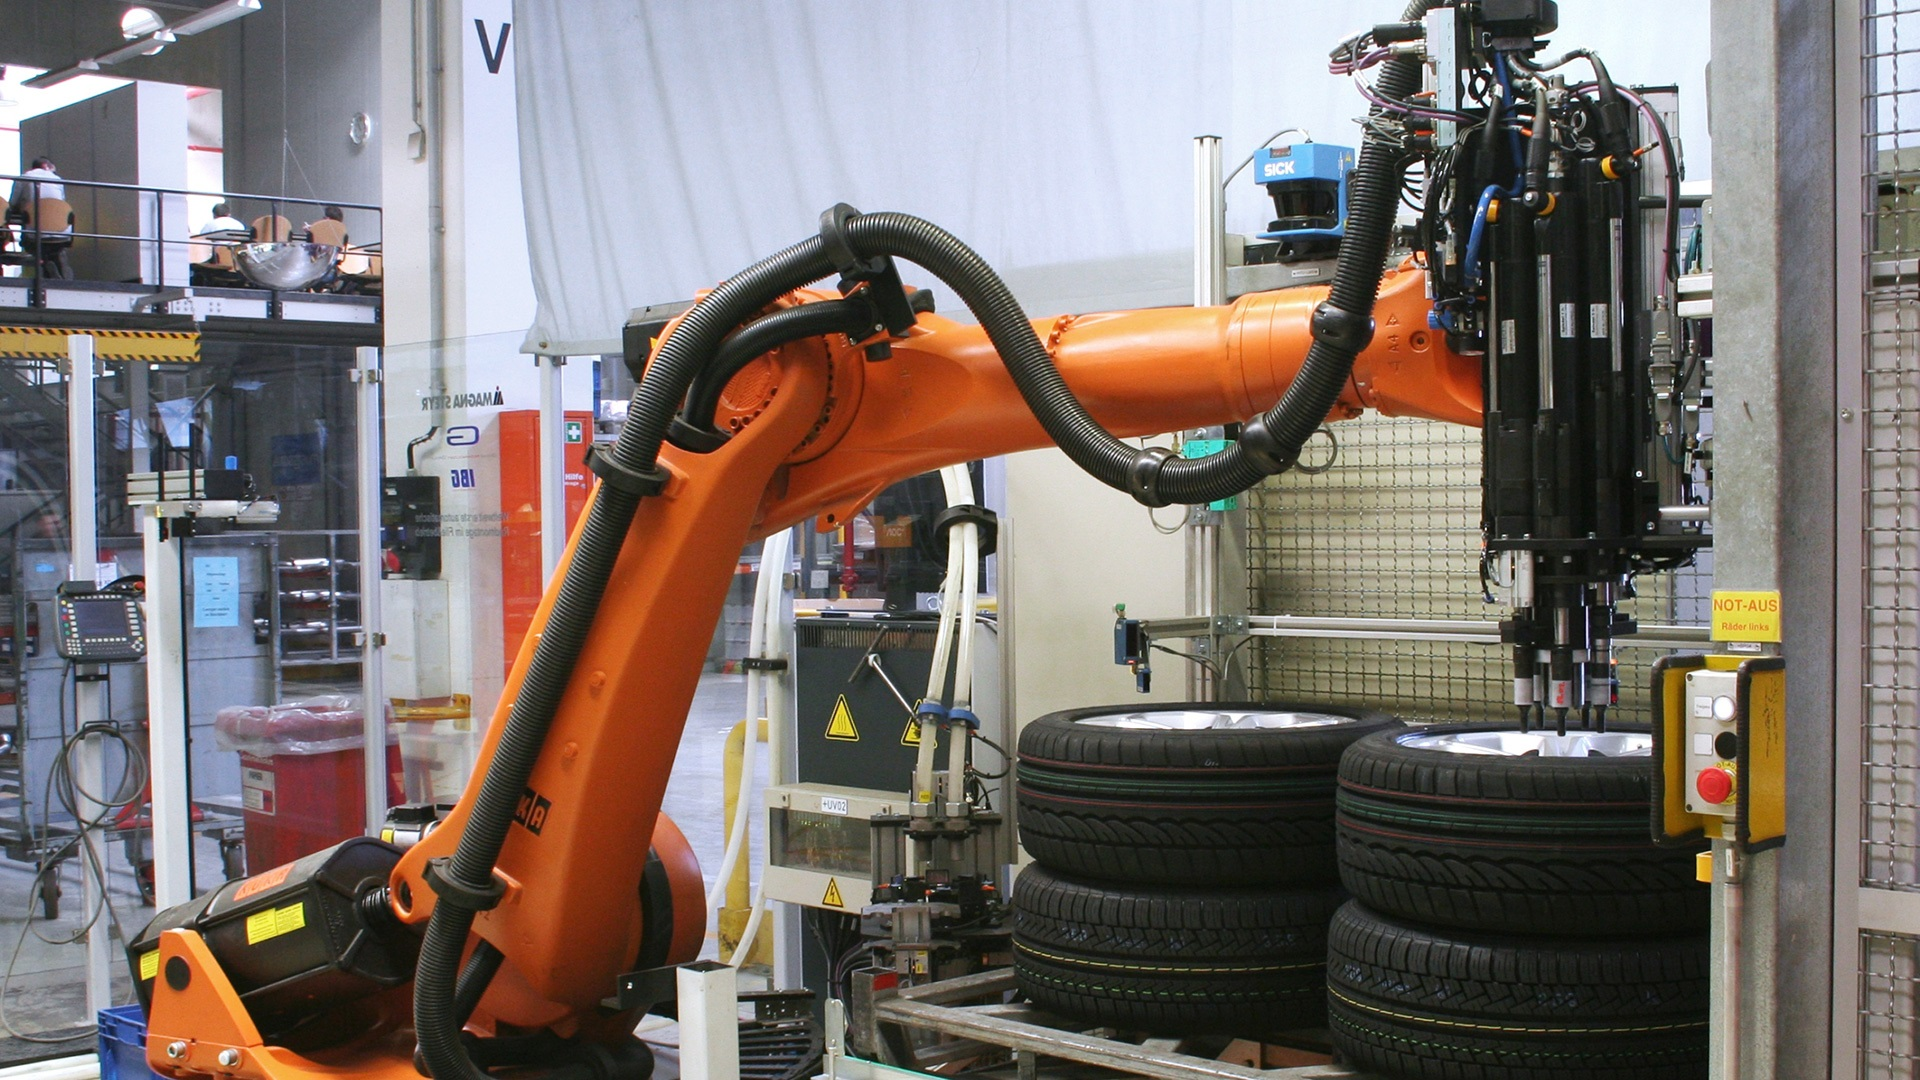 Kuka industrial robots screwing bolts and rims onto a car